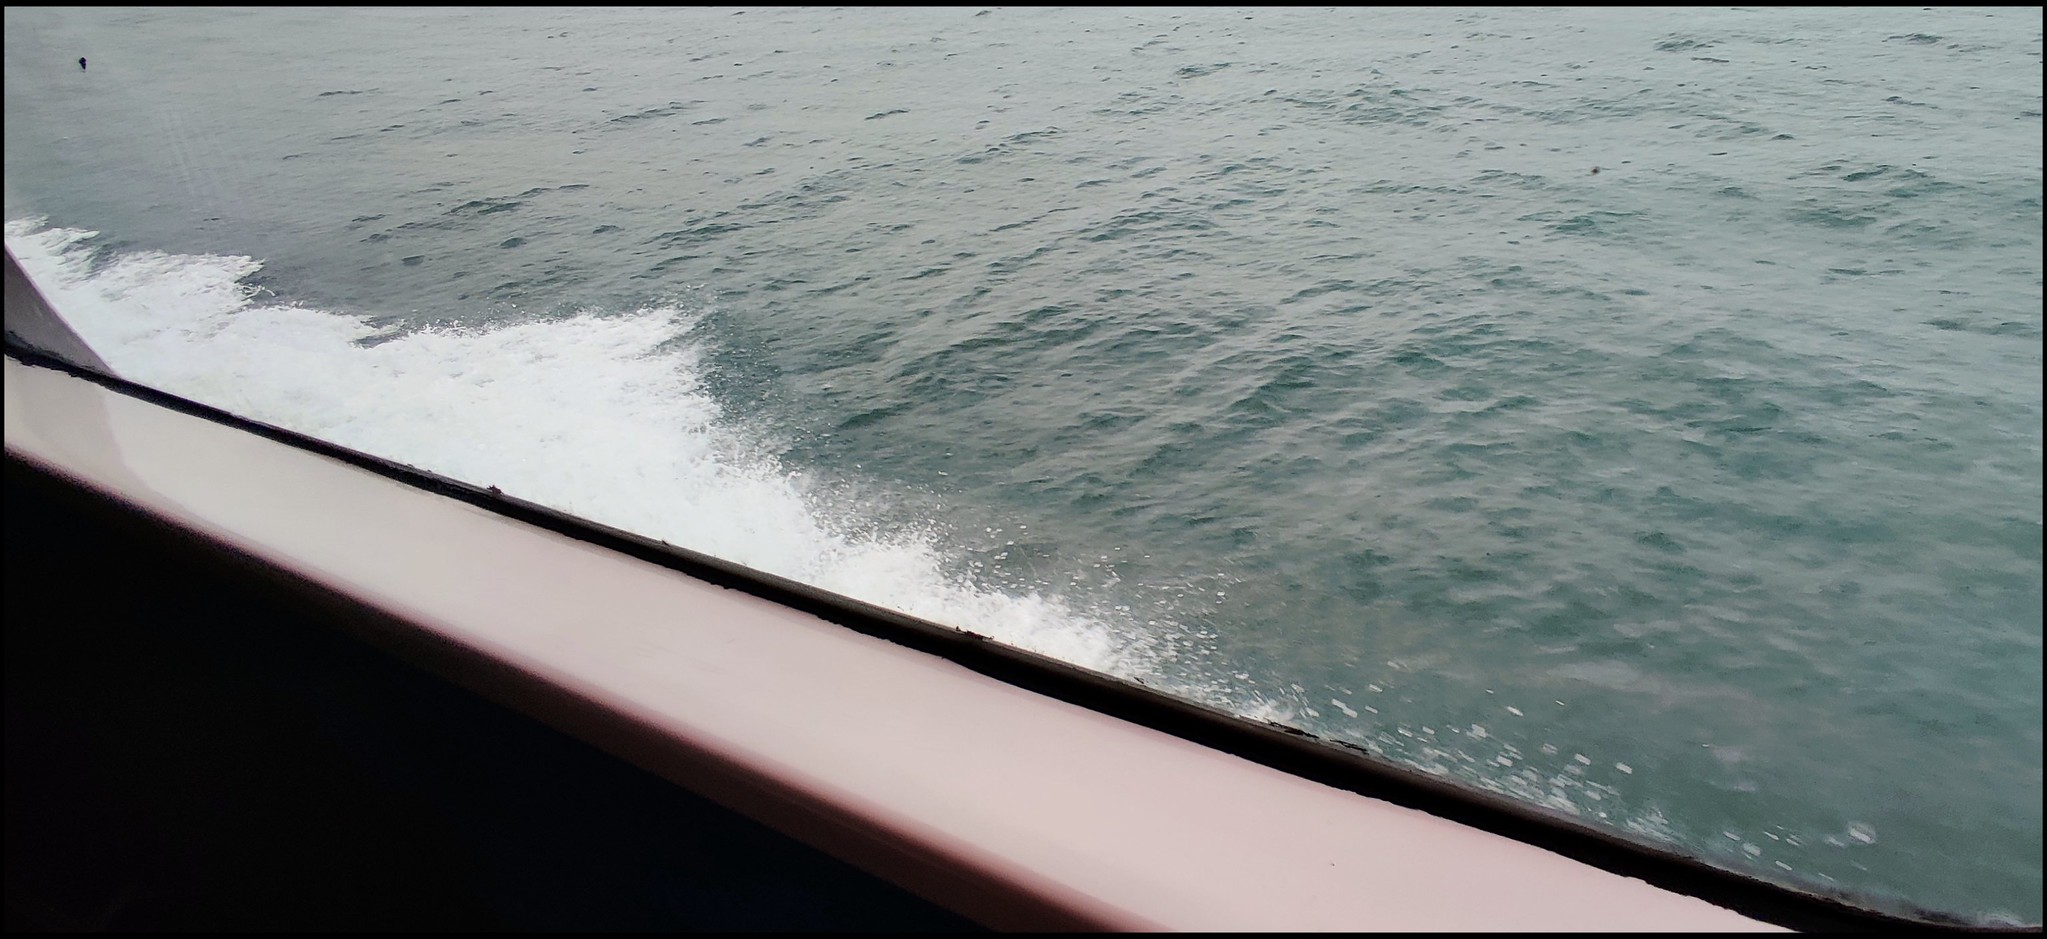 In the middle of the sea. Smooth rides and fair winds.